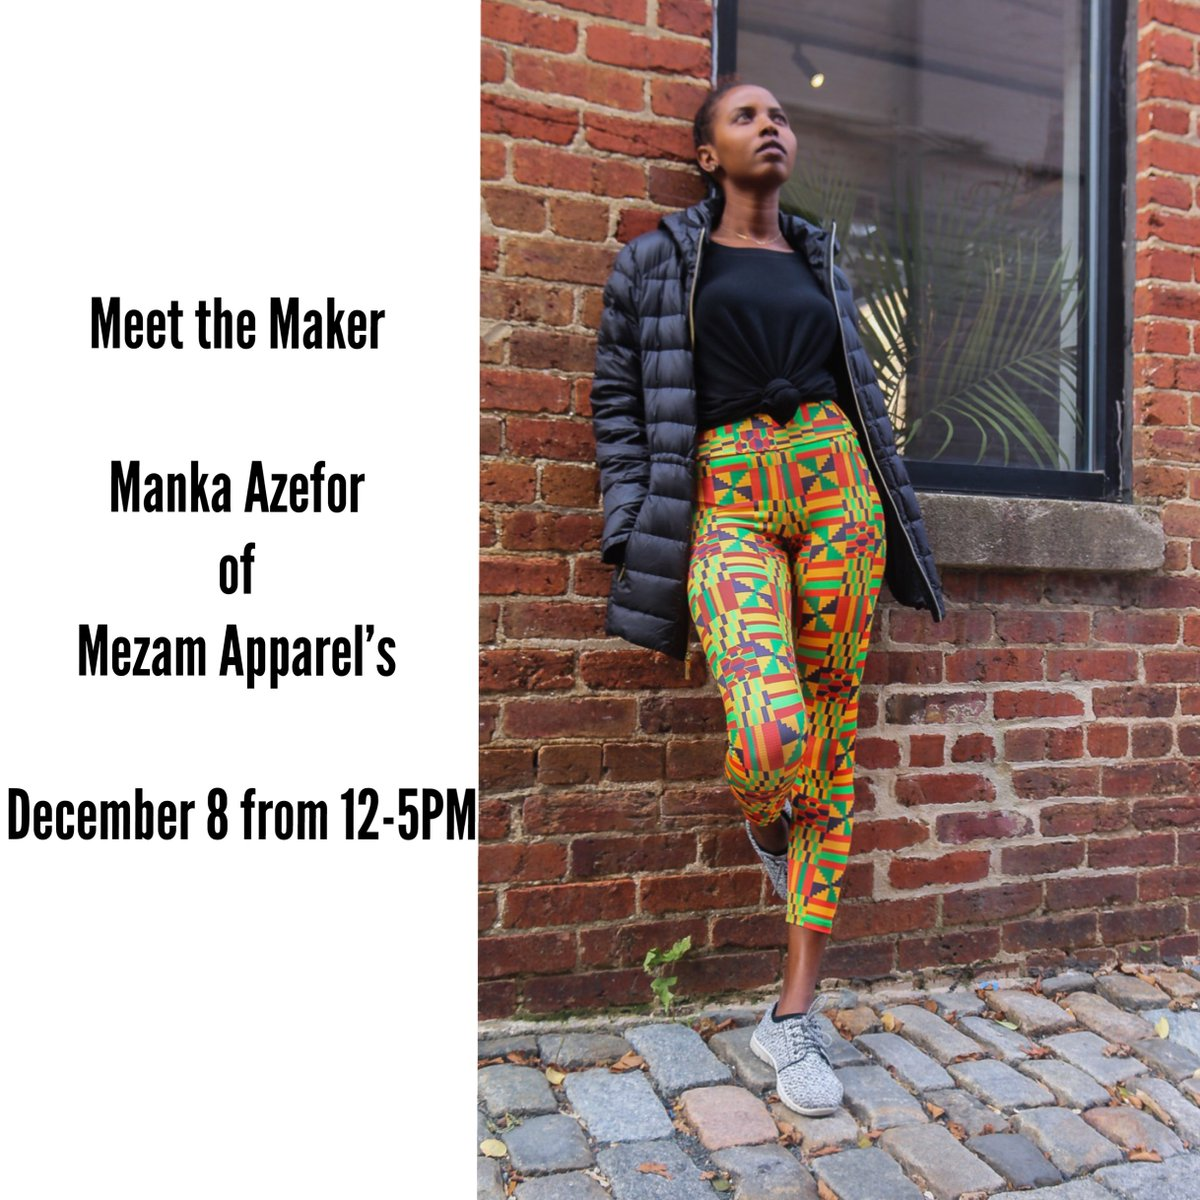 #ShopZawadi Meet Manka Azefor & purchase unbelievably cool leggings, bags, & athleisure wear with African prints this weekend!